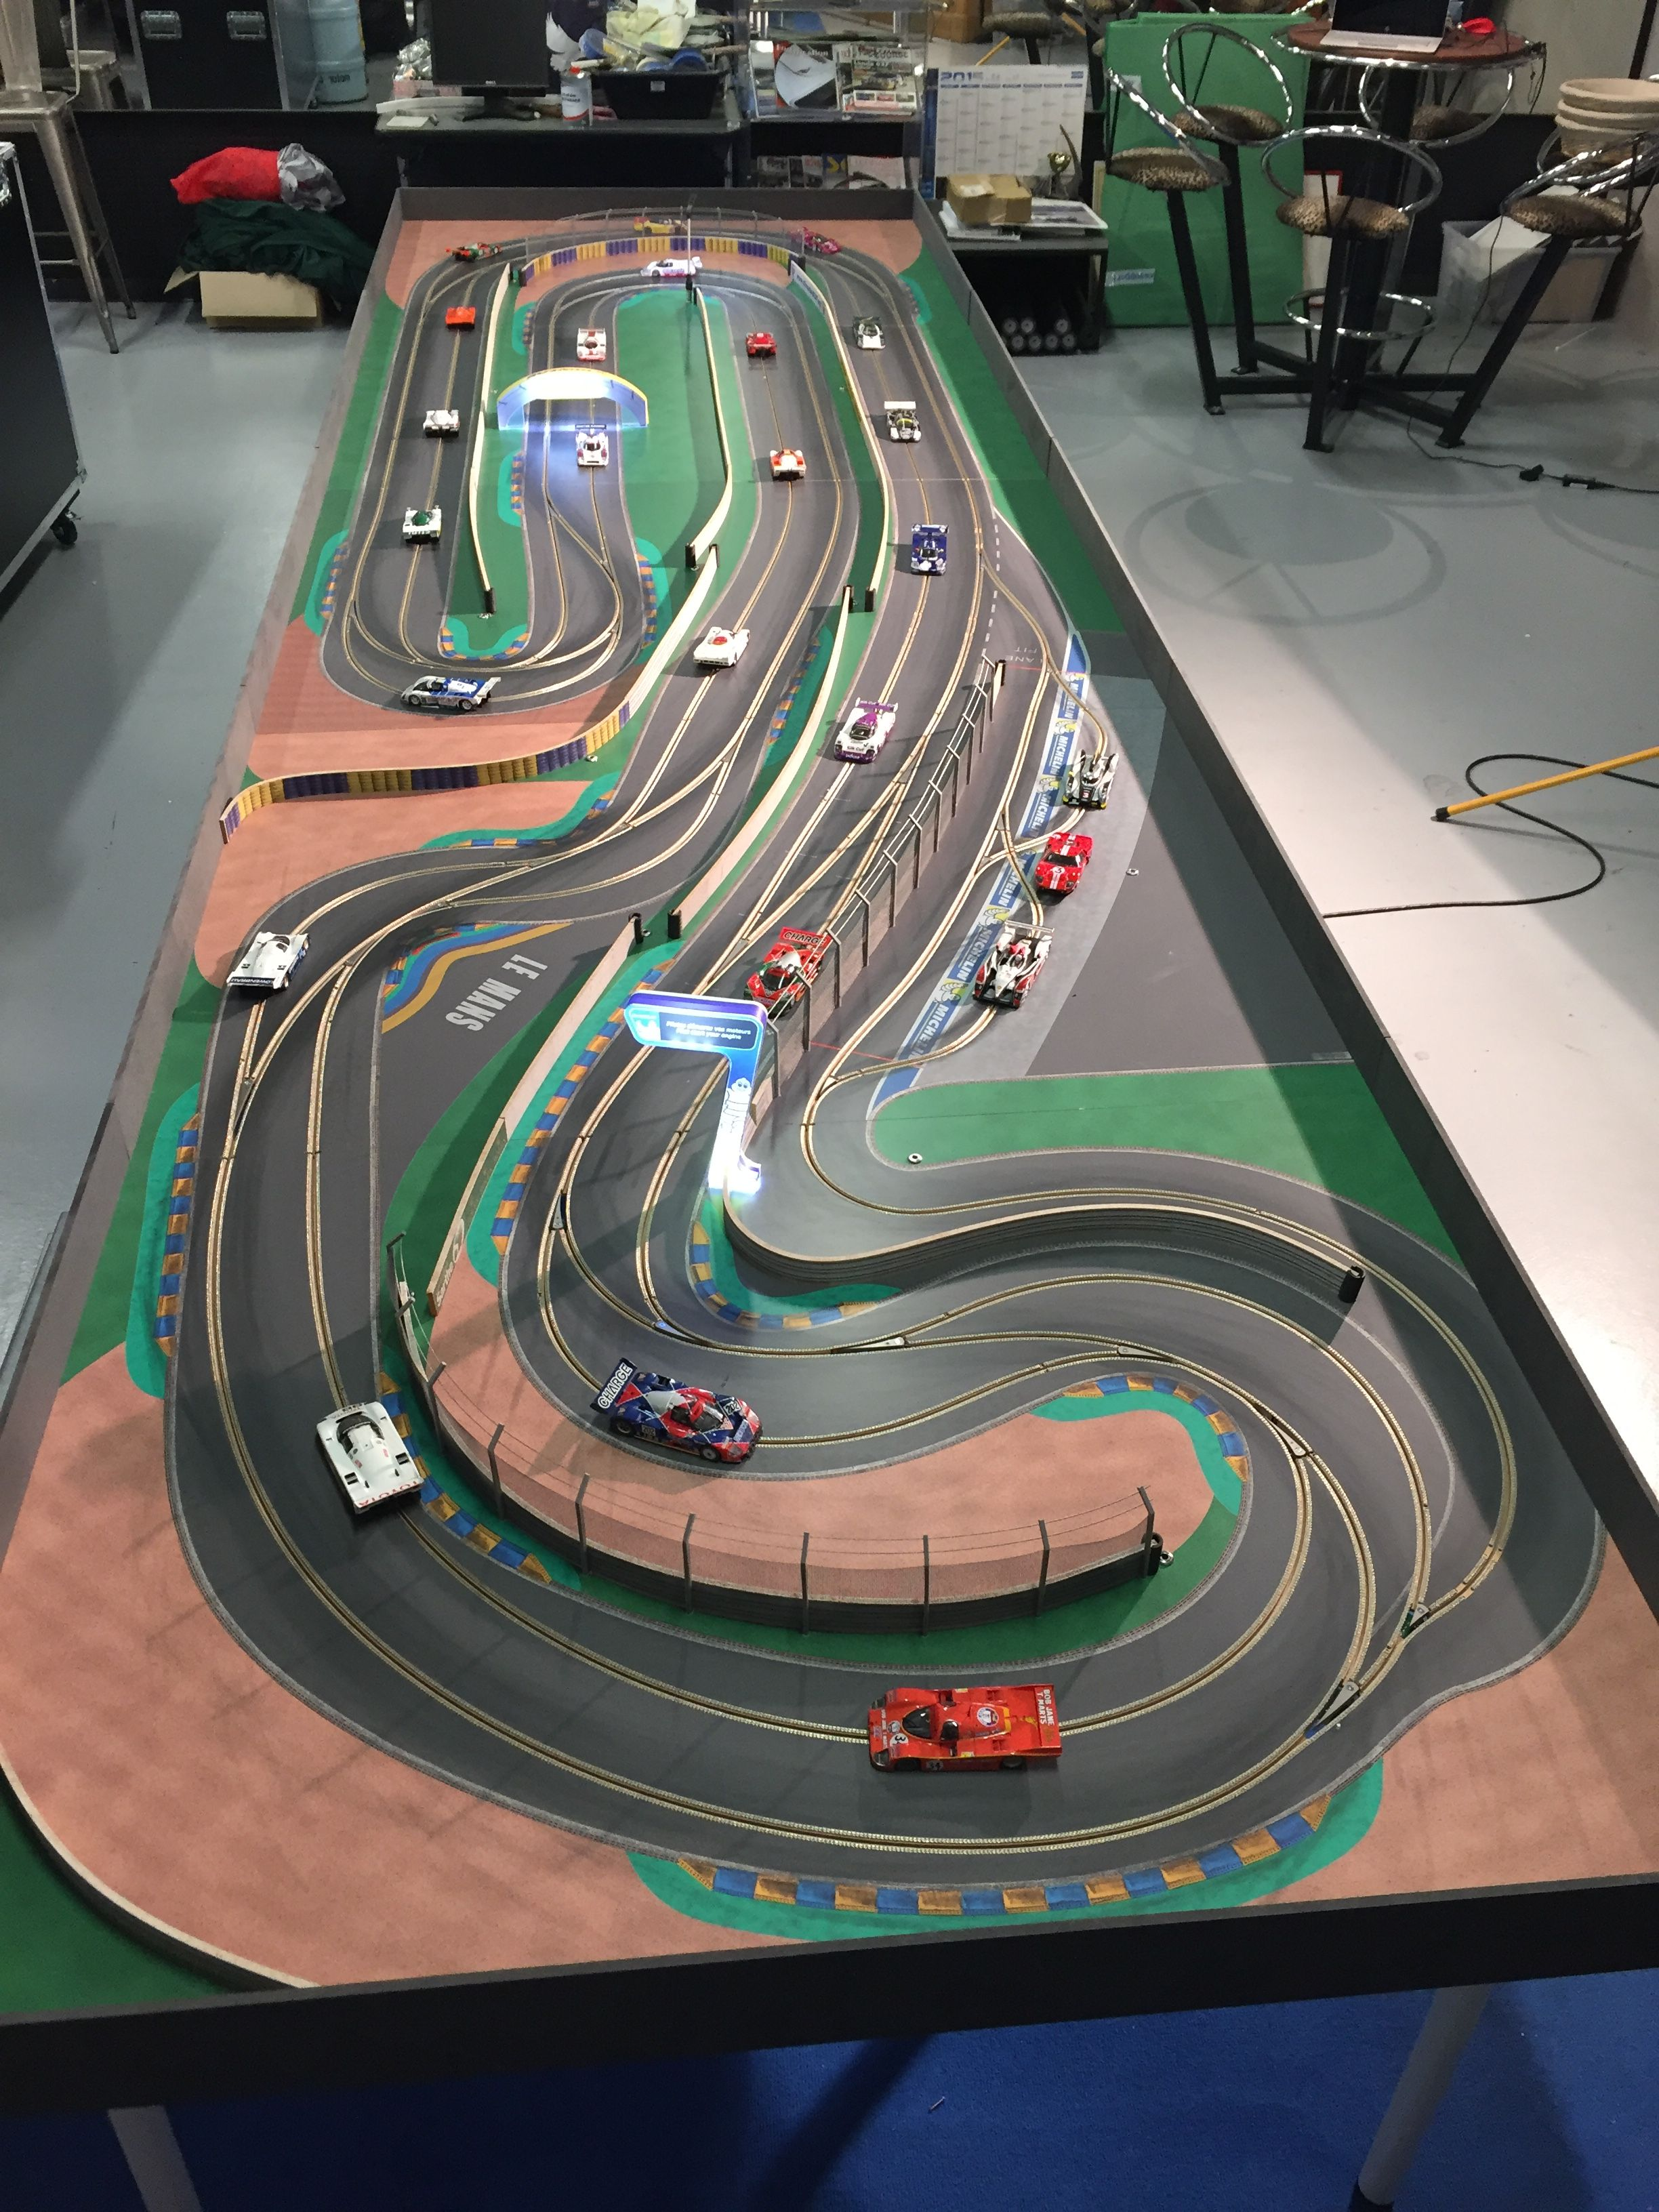 Cuuuuurves Posted Image Might Contain Tons Of Hours Of Fun Slot Cars Slot Car Tracks Slot Car Racing